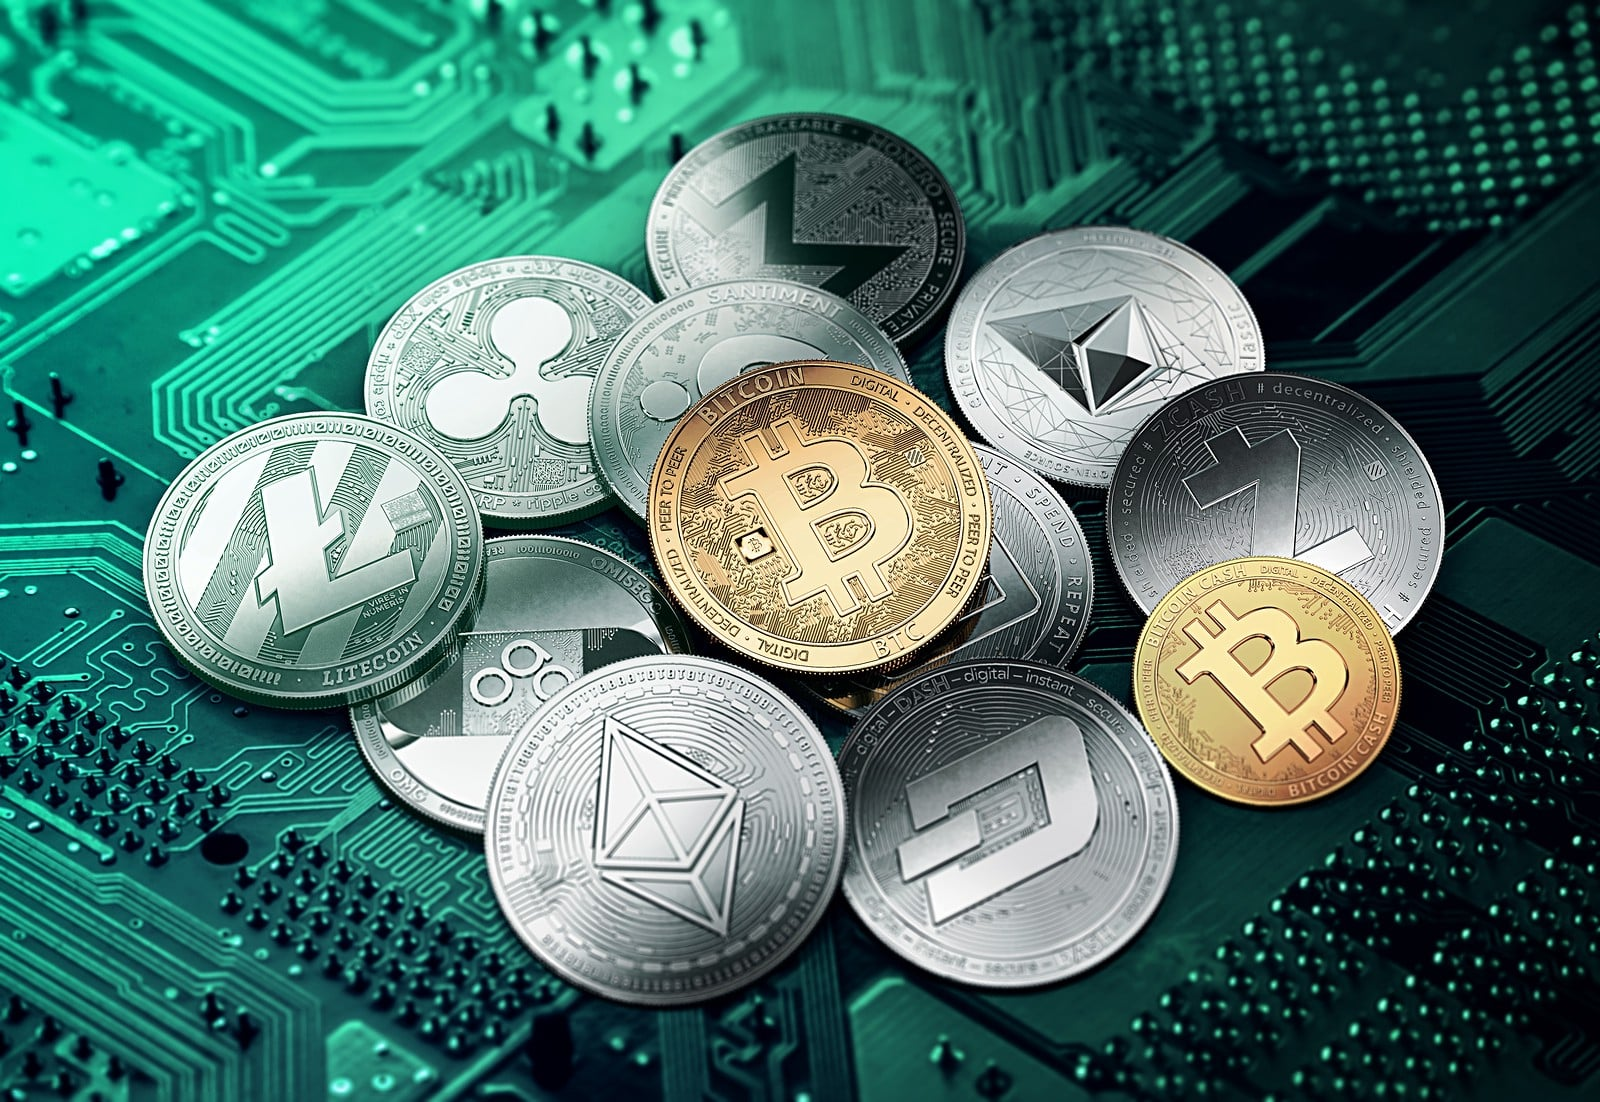 Crypto currency: more freedom or more security?